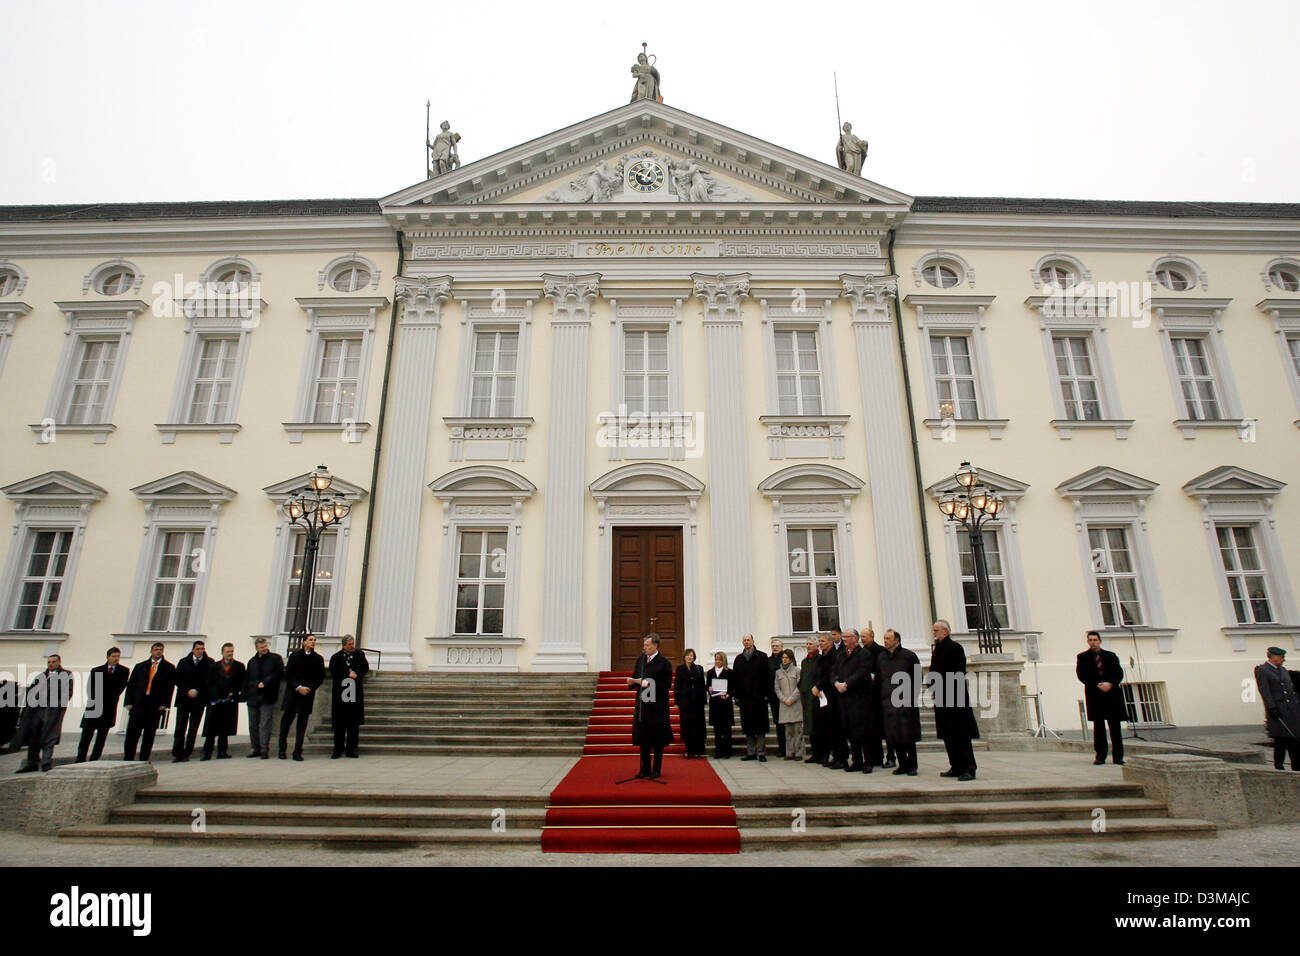 (dpa) - German President Horst Koehler (C) speaks at the Bellevue palace in Berlin, Germany, Sunday 8 January 2006. - Stock Image